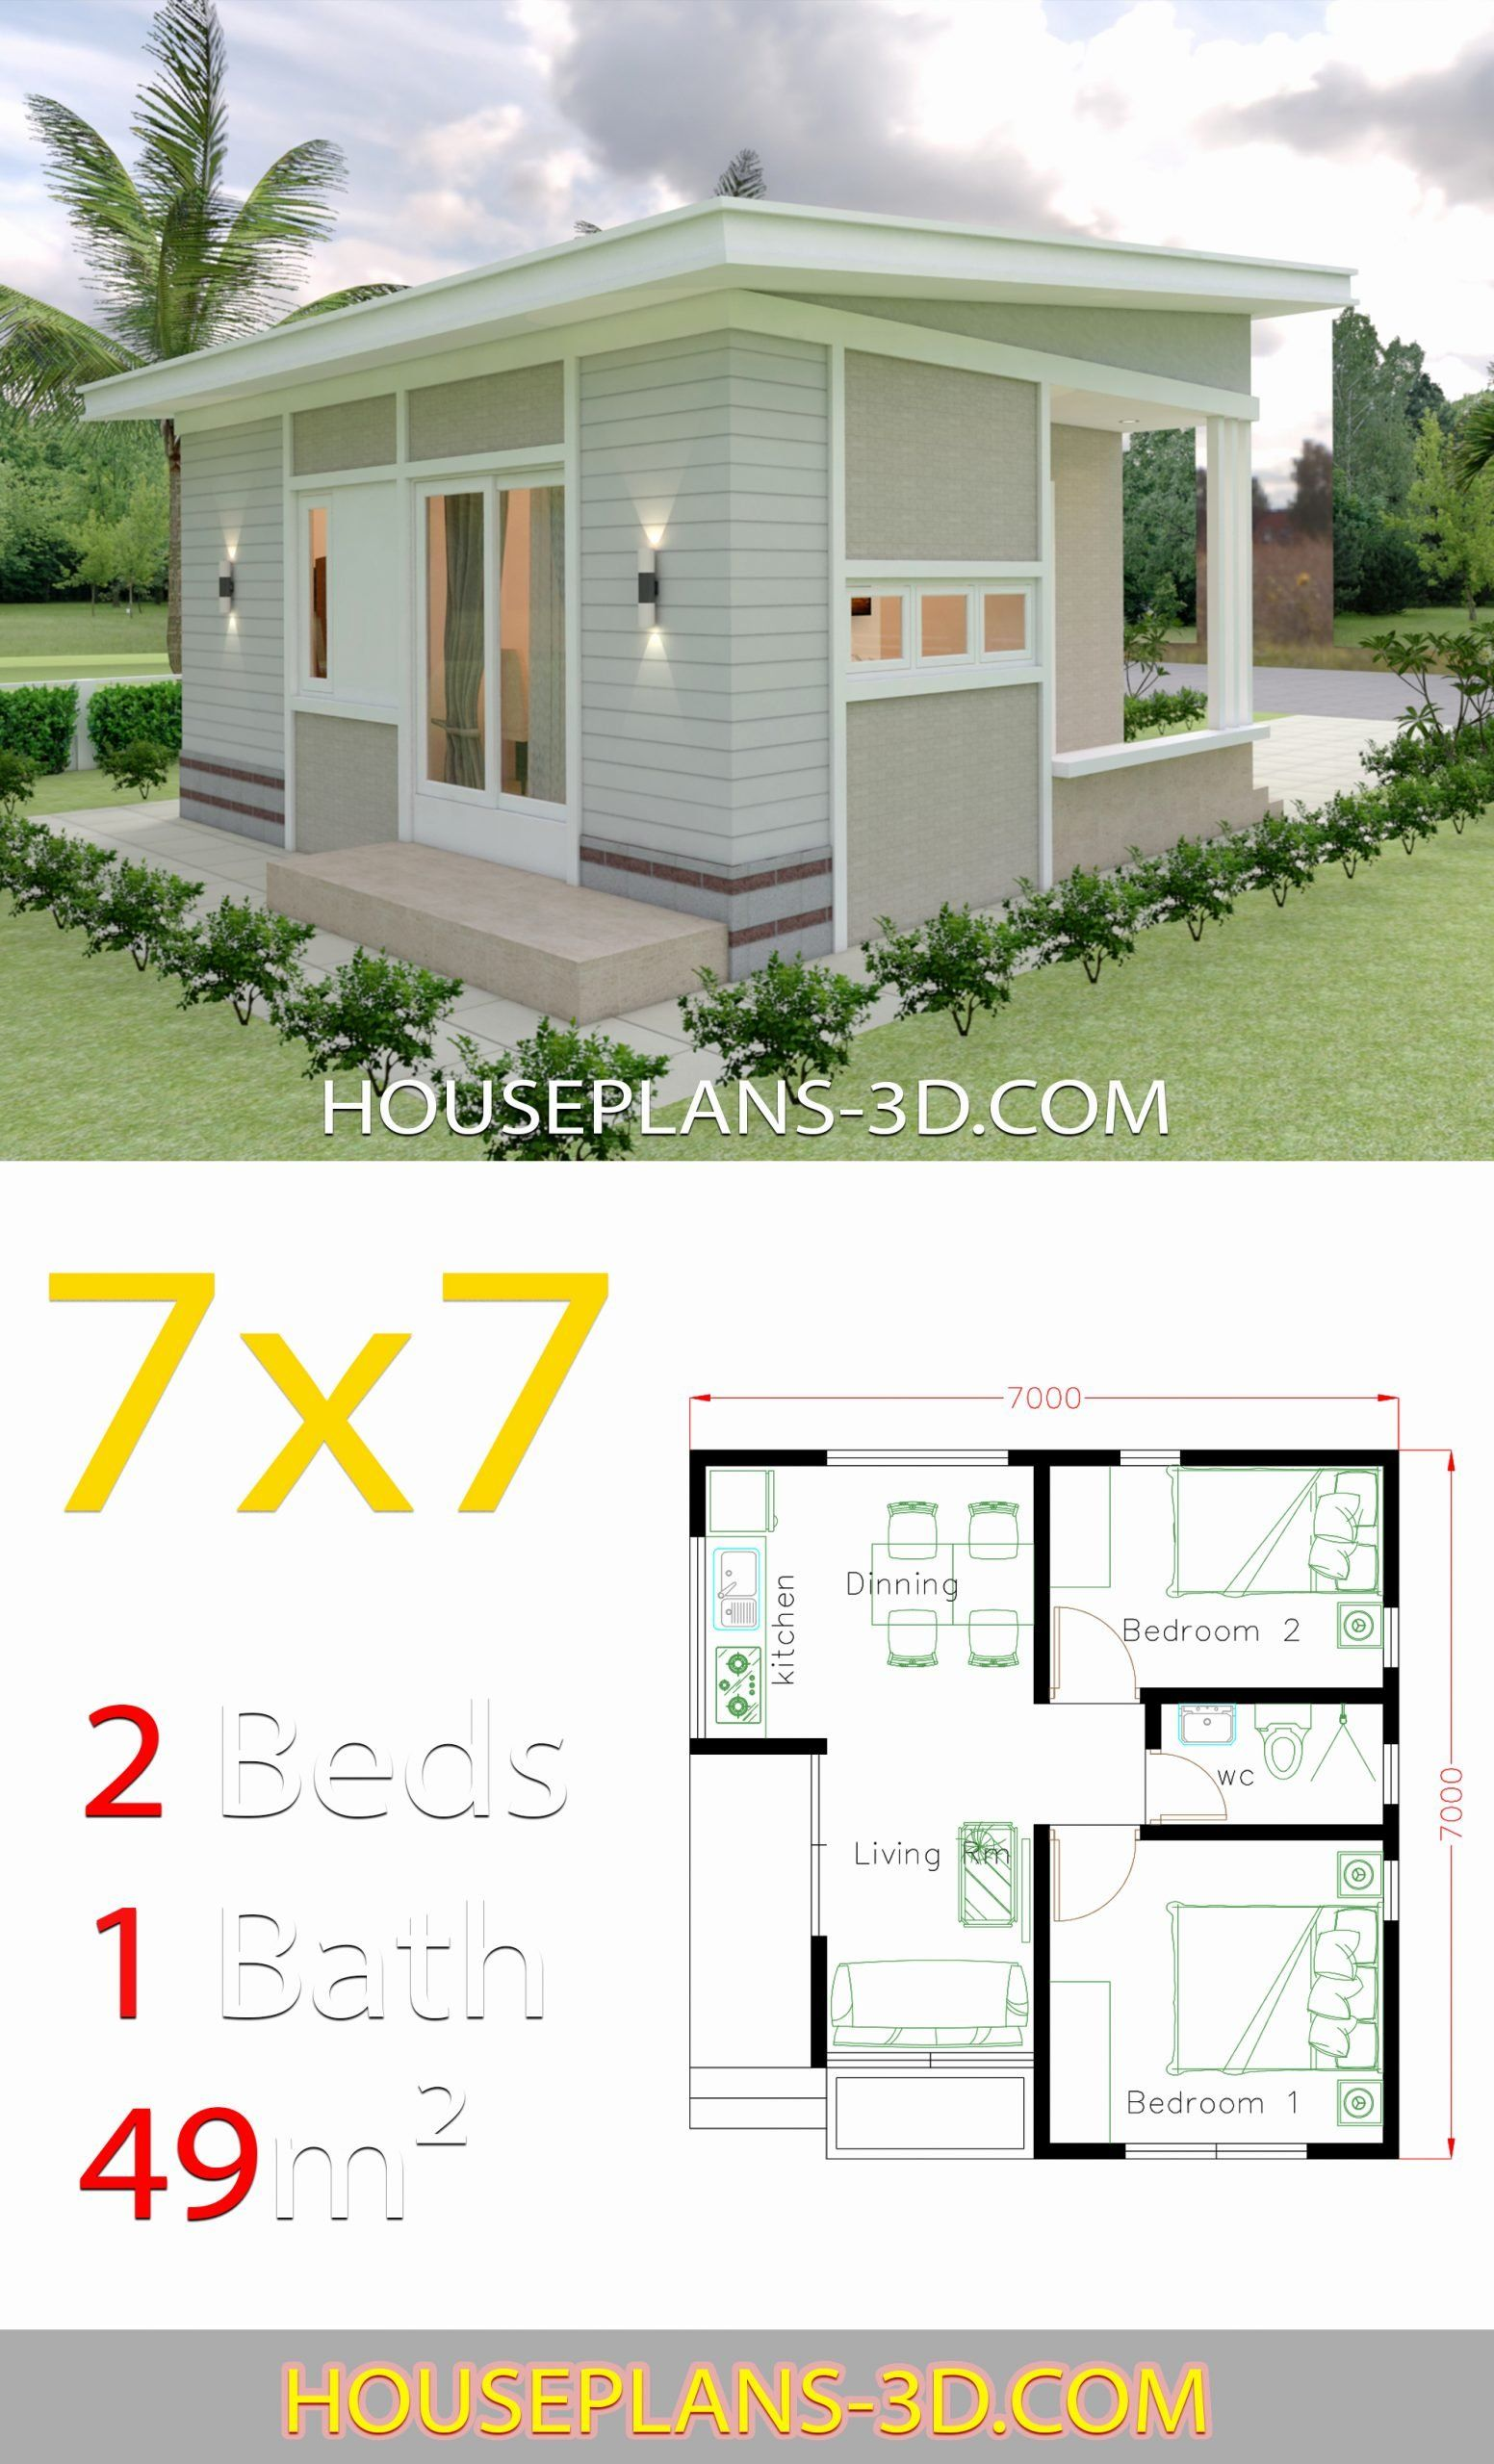 Two Bedroom House Design Pictures Lovely Small House Design Plans 7x7 With 2 Bedrooms Hous Small House Design Plans Two Bedroom House Design Small House Design